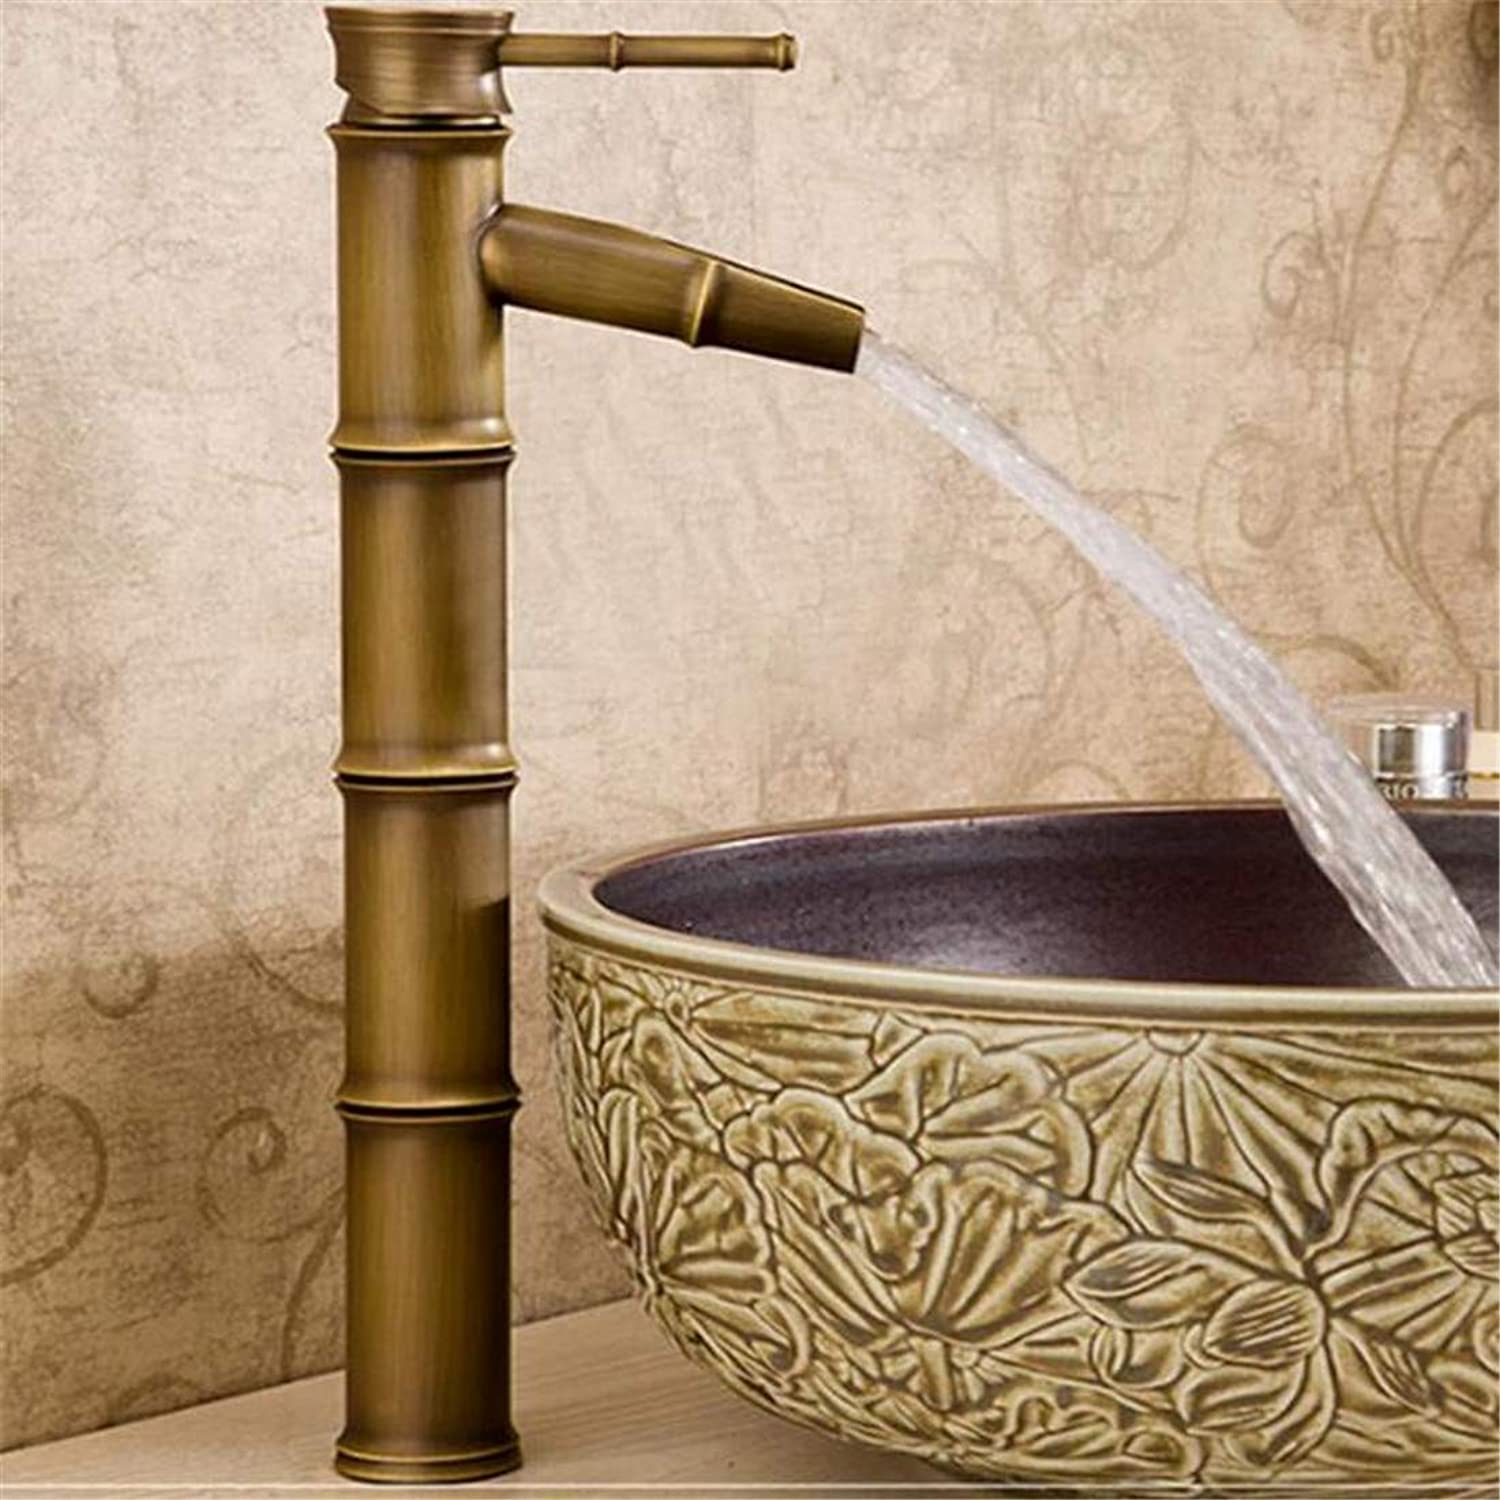 Faucet Luxury Plated Mixer Faucet Taps Faucet Basin Faucet Antique Pure Copper Basin Faucet Classical Art Hot and Cold Water Faucet